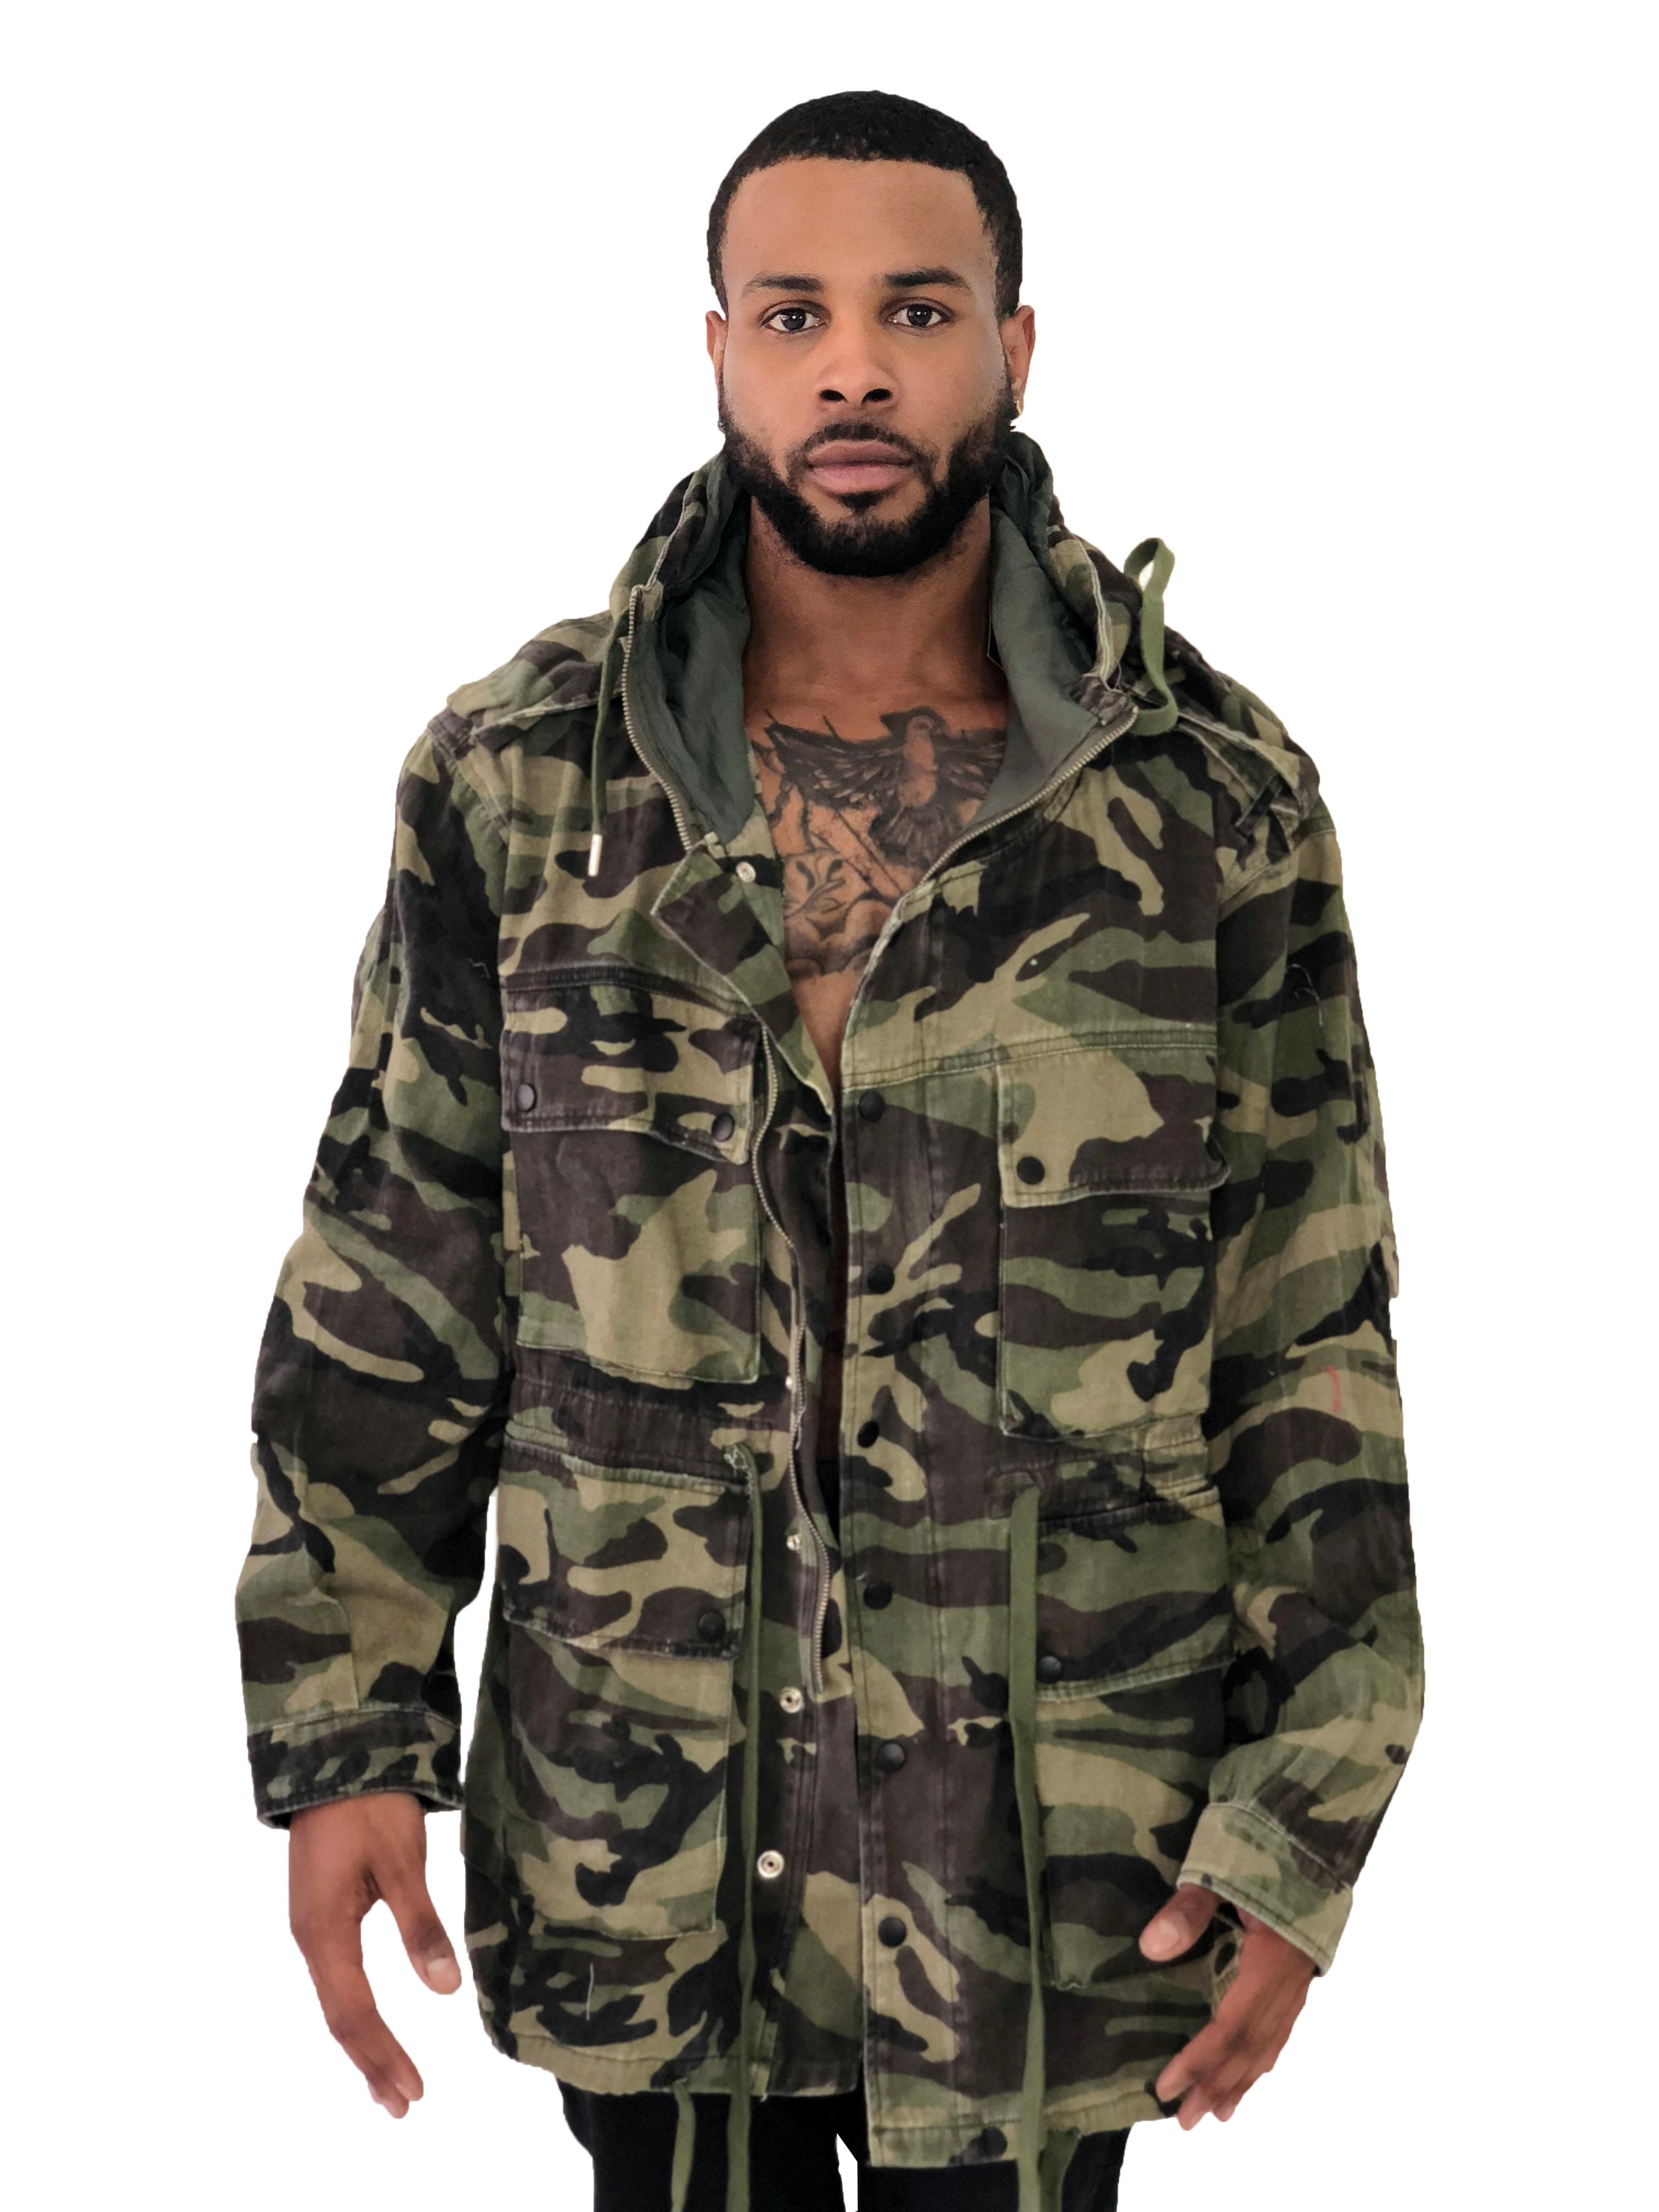 a902388e4e1f0 Sixth June Paris men's jacket with oversize cut and thin material. Double  sided cargo pockets, pair of chest pockets, epaulette and hood. Green  camouflage ...